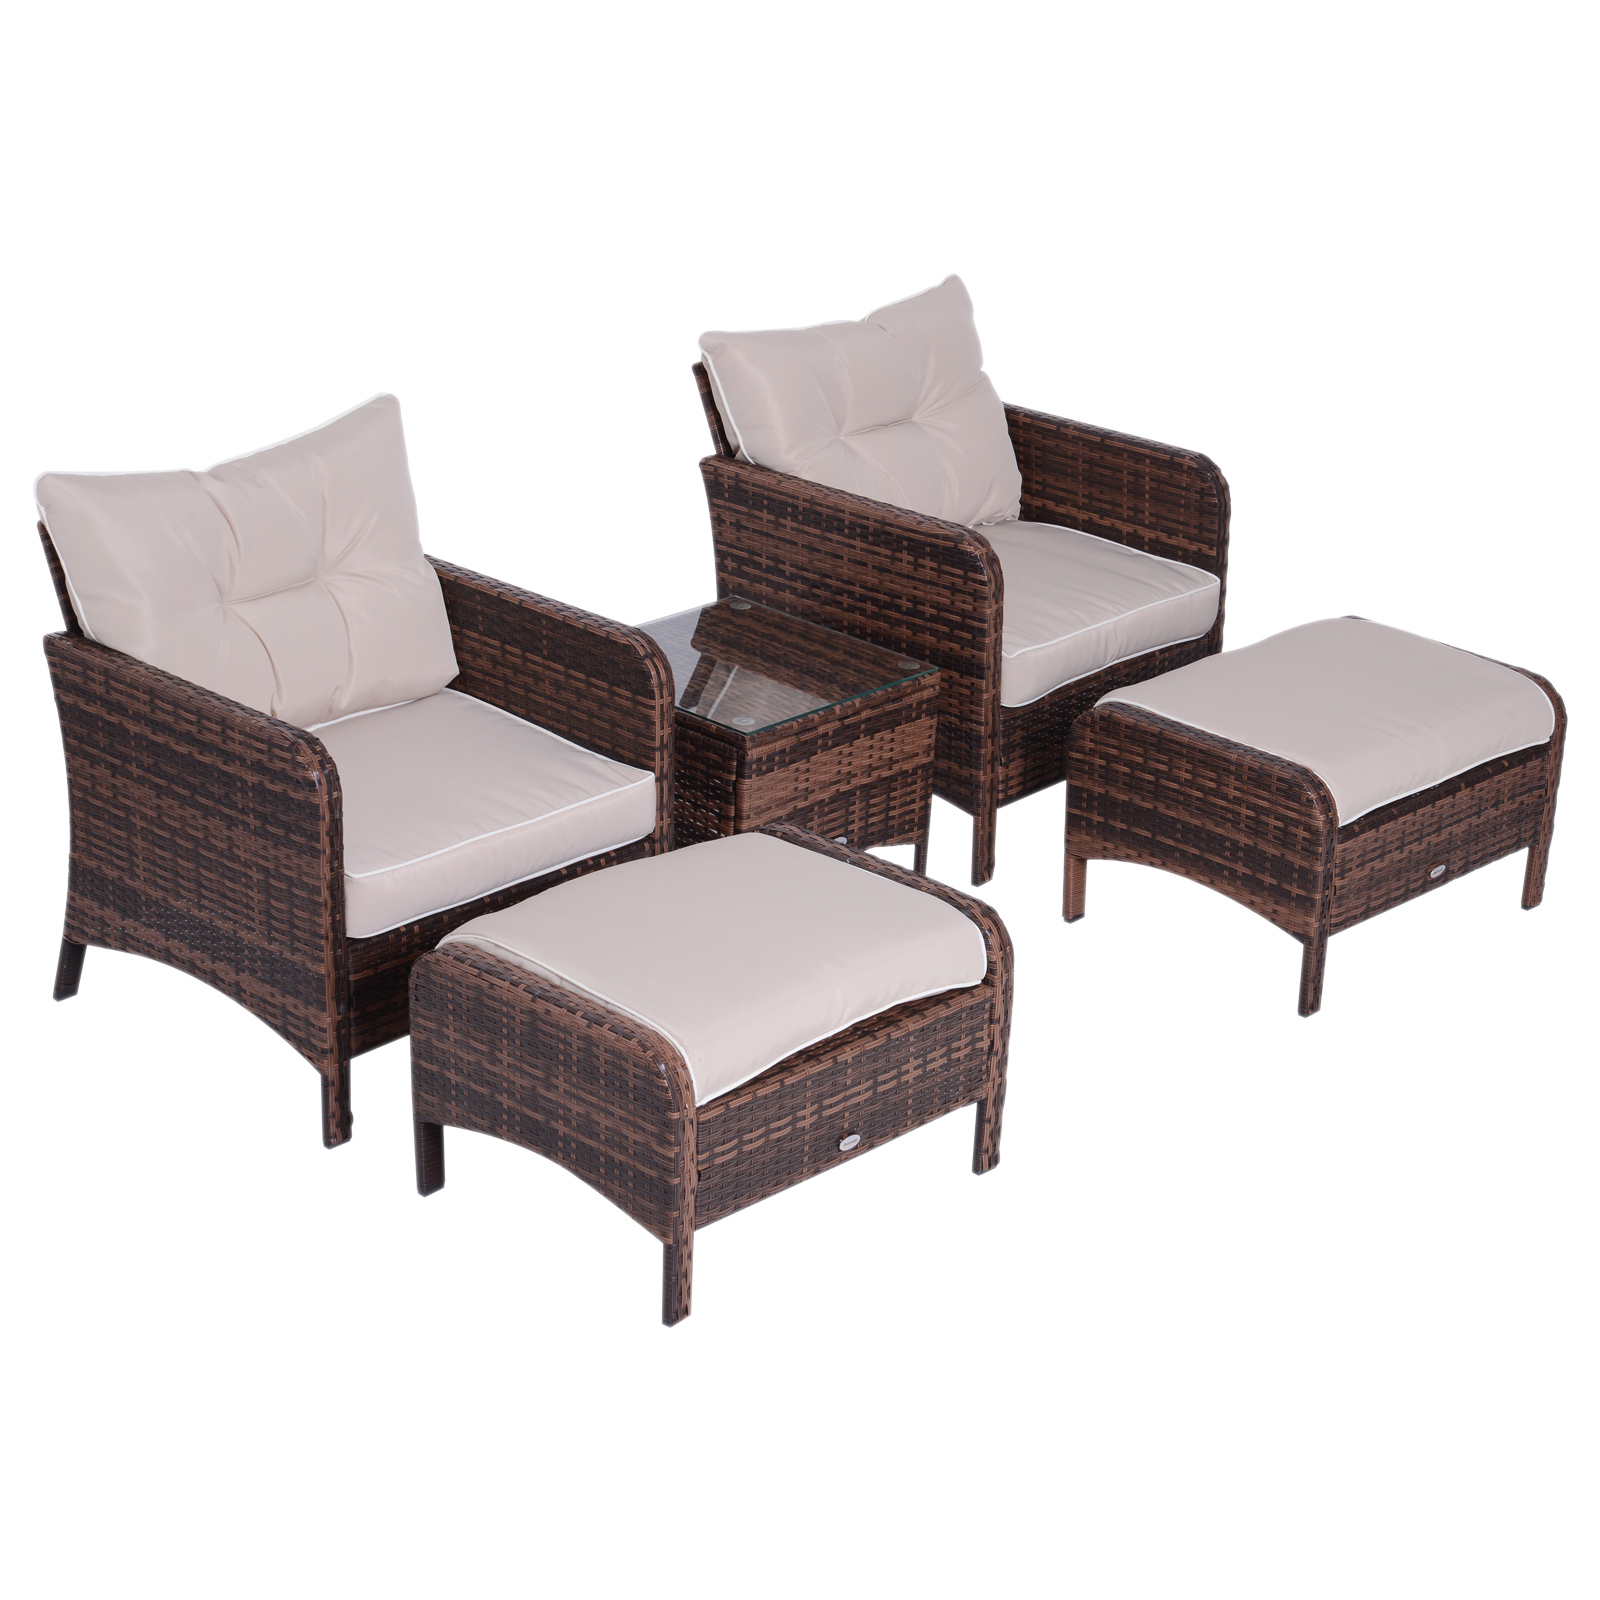 Outsunny 5 Piece Outdoor Patio Furniture Set All Weather Wicker Conversation Set Footrest Coffee Table Outside Deck W 2 Chairs 2 Footstool A Glass Brown Patio Furniture Aosom Canada